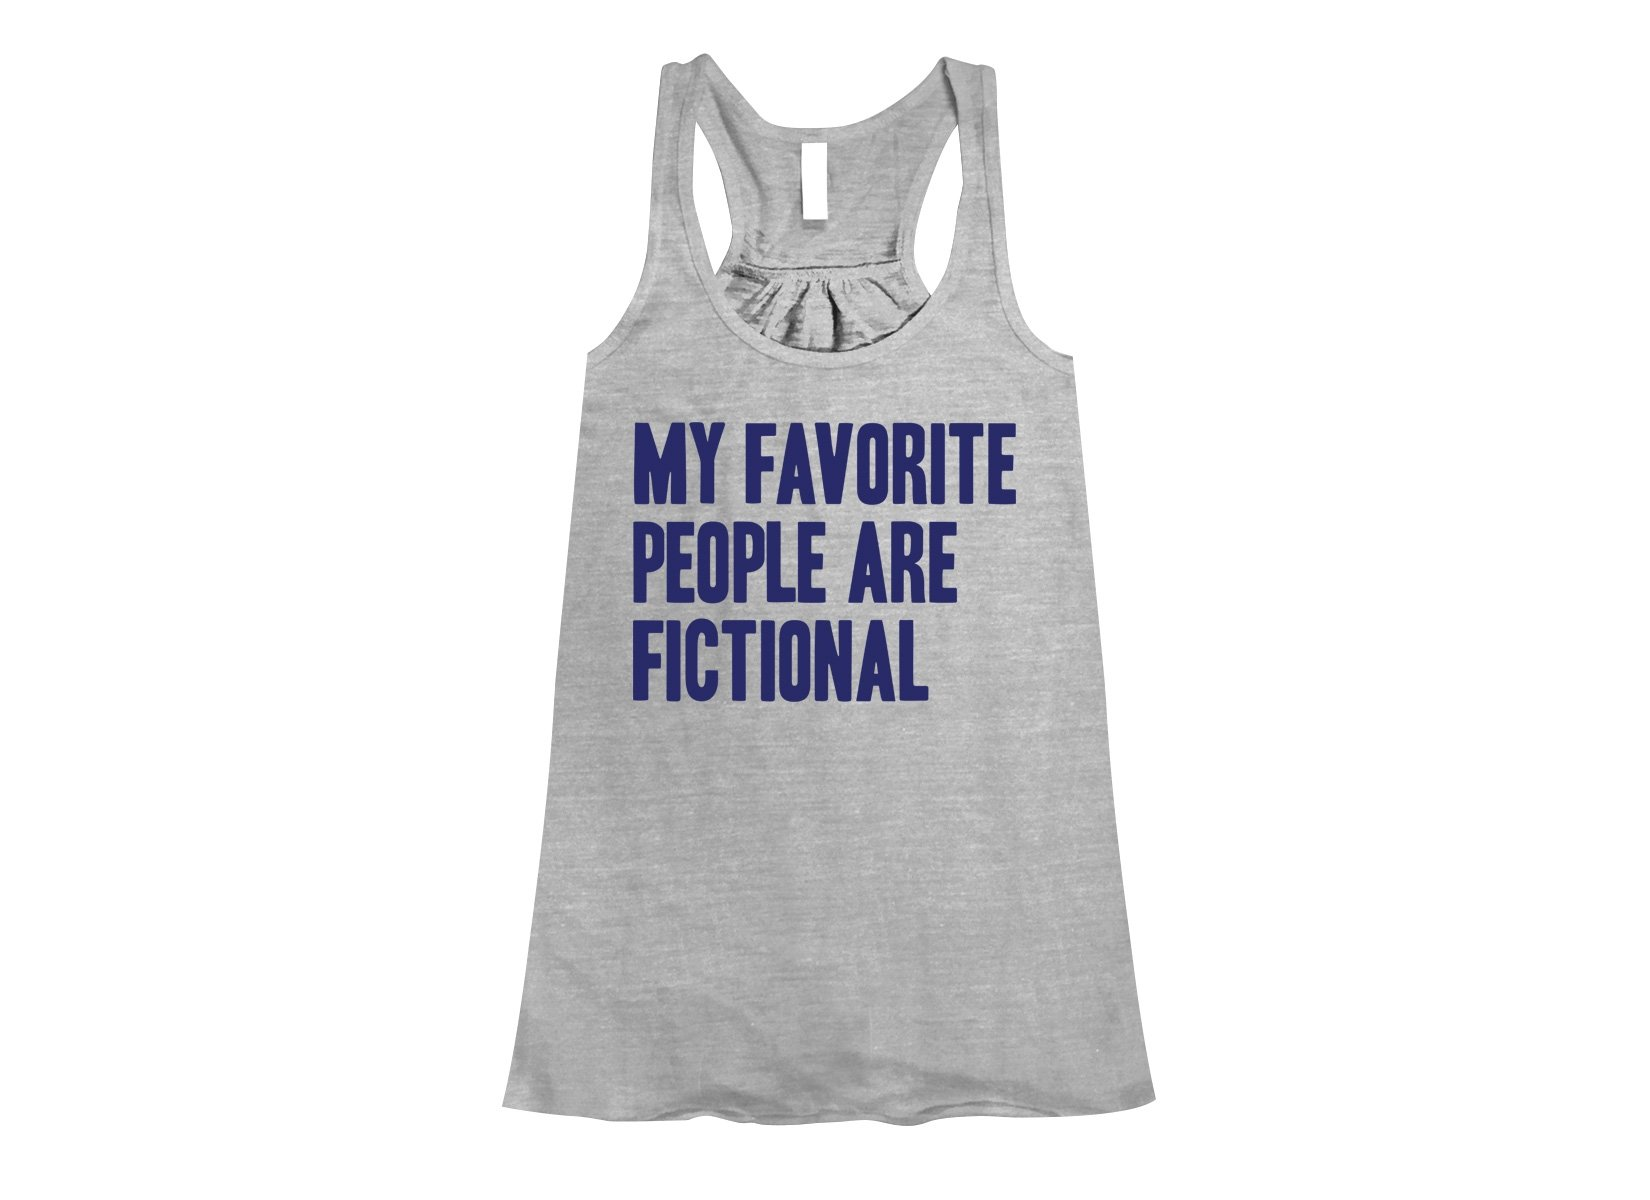 My Favorite People Are Fictional on Womens Tanks T-Shirt